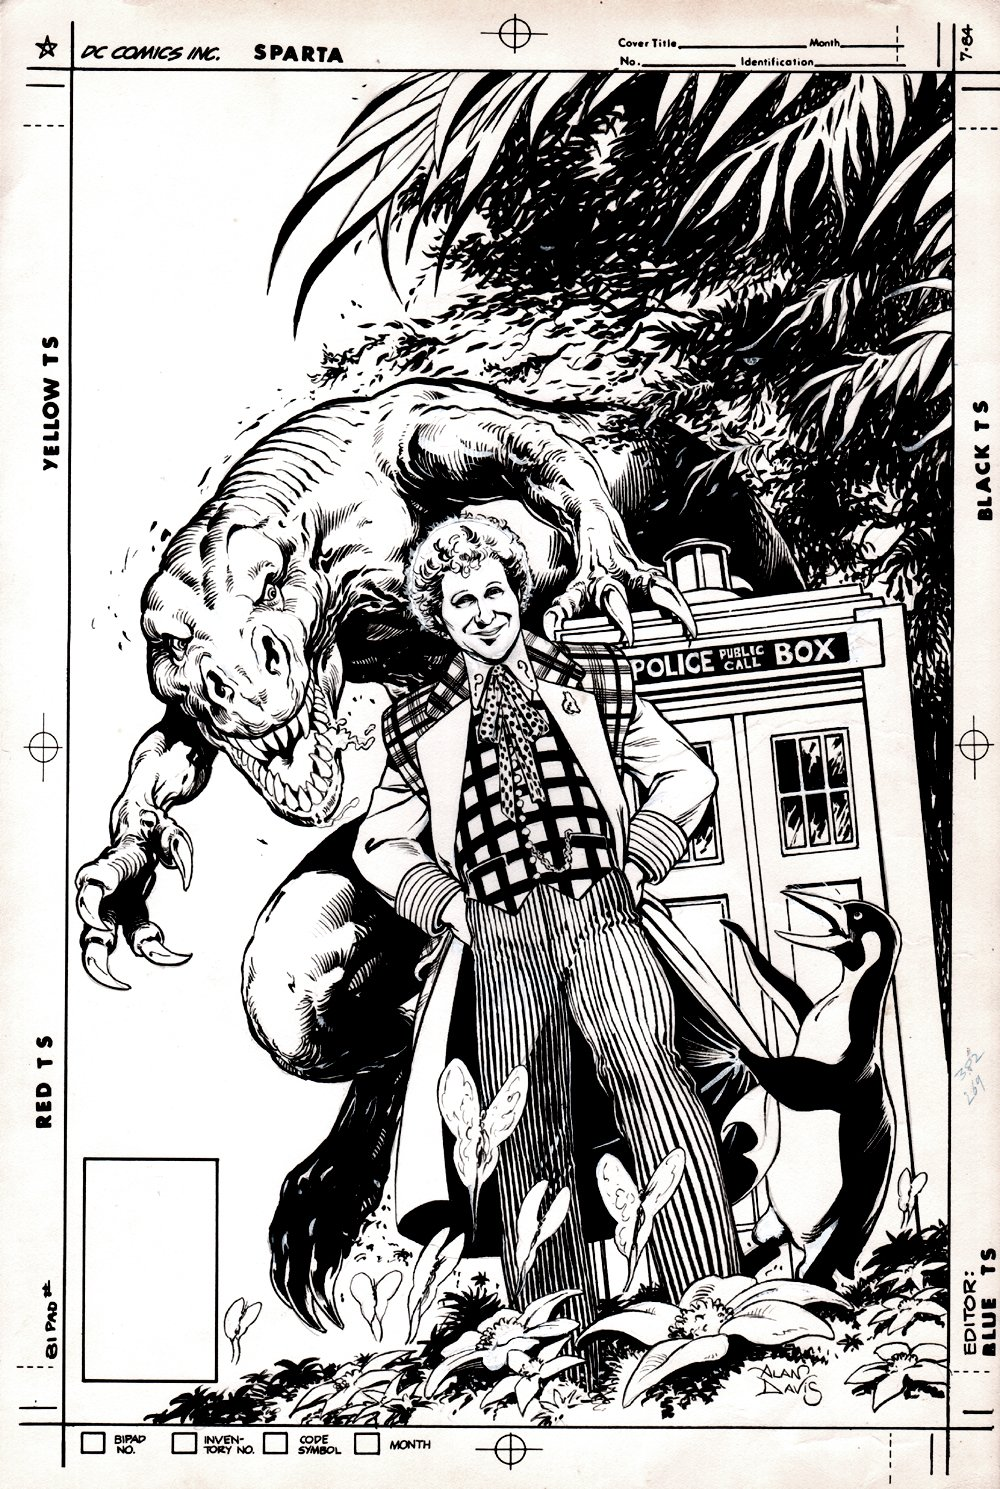 Doctor Who: Age Of Chaos #1 Cover (1994)